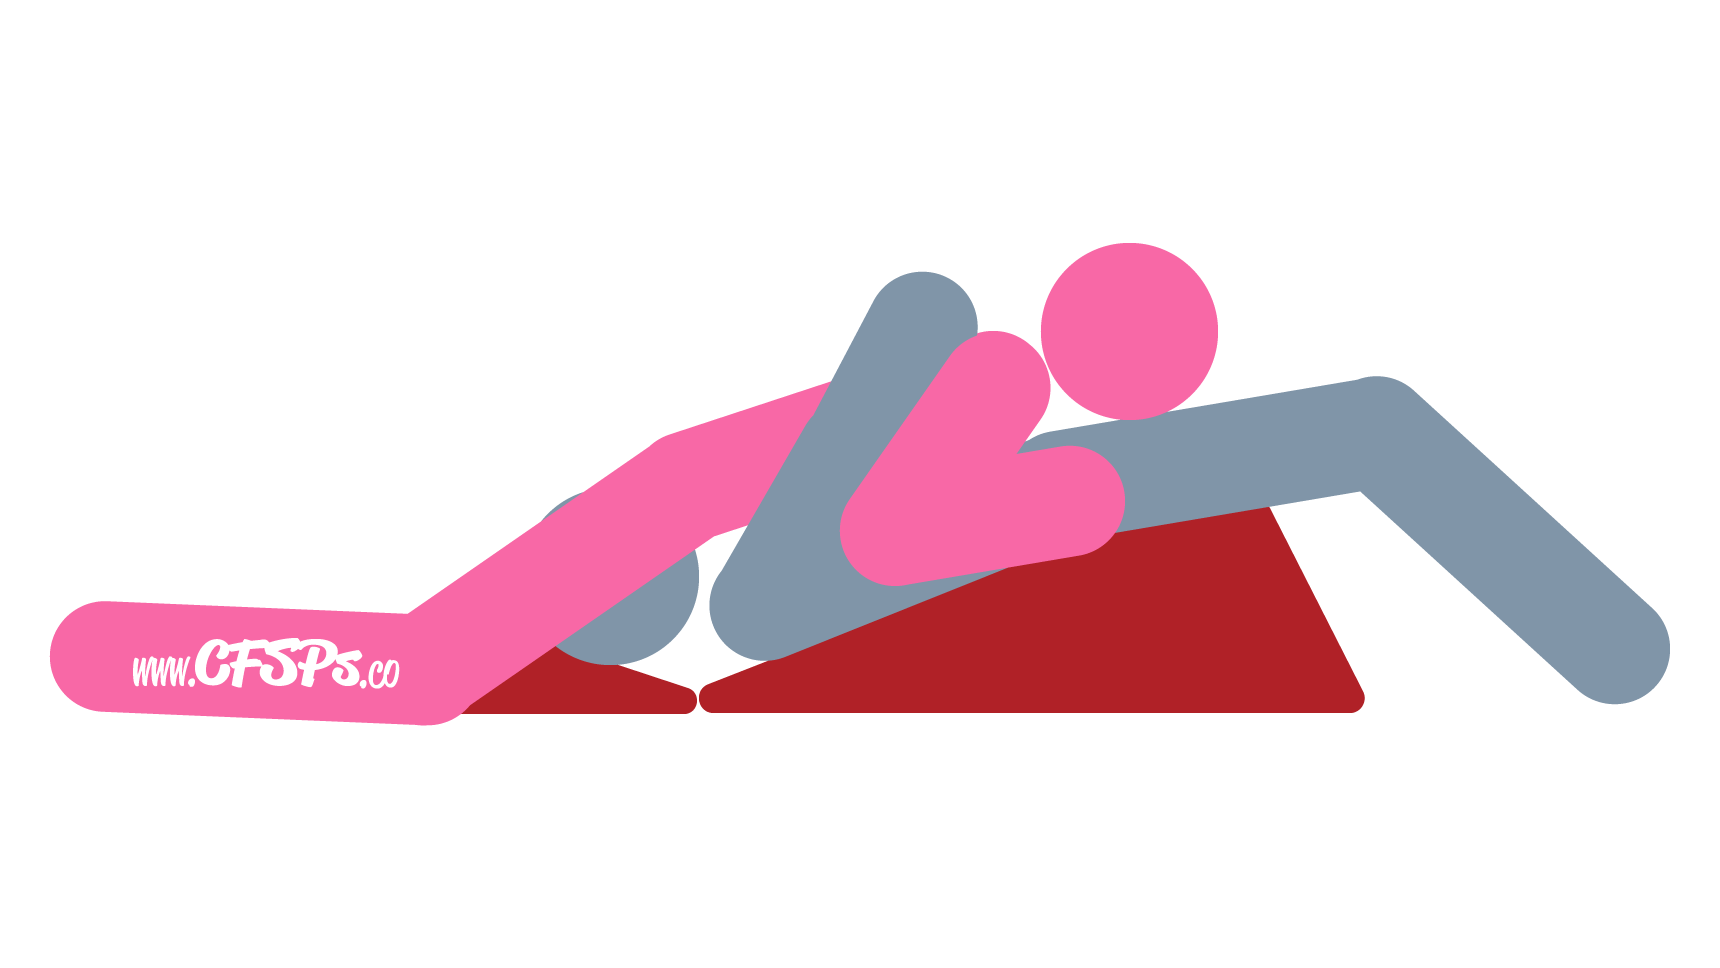 An illustration of the Bridge 2 sex position. This picture demonstrates how Bridge is a simultaneous fellatio and cunnilingus oral sex position that's enjoyed using a Liberator Wedge/Ramp combo.